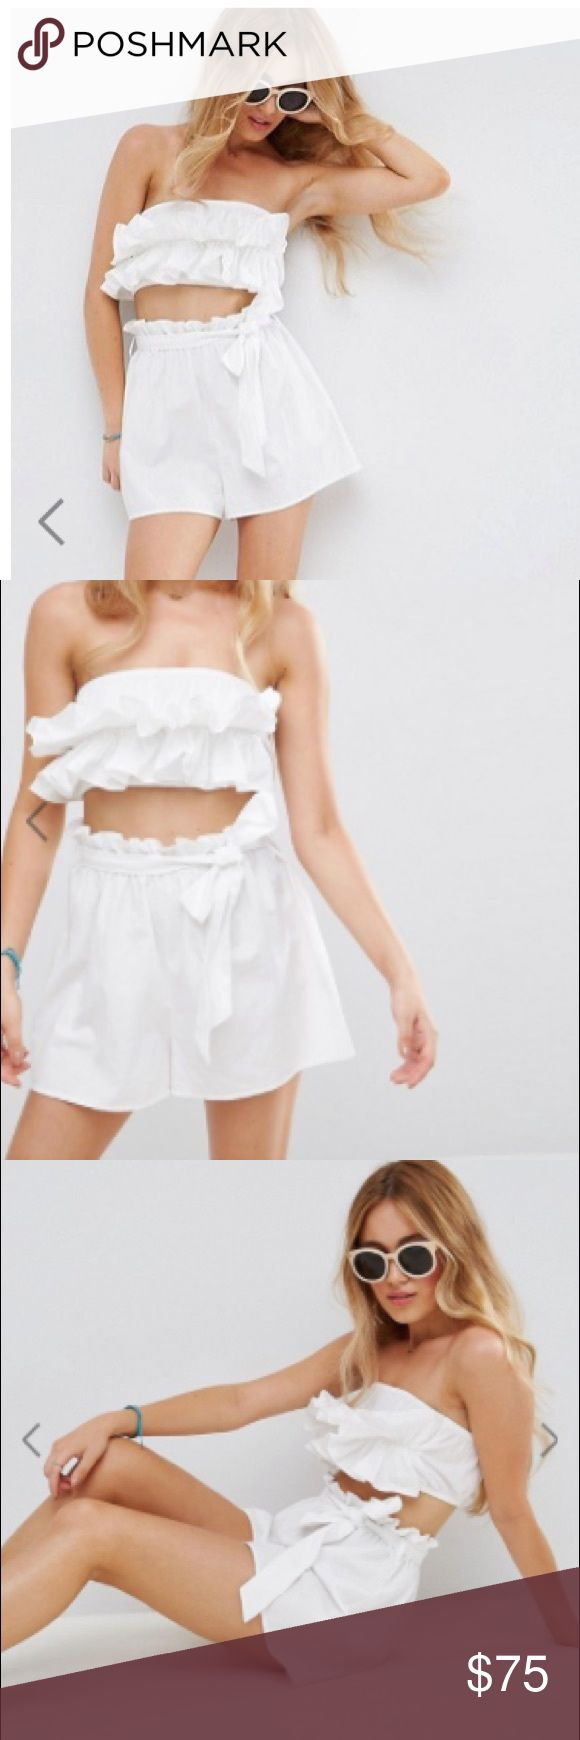 NEW 2 Piece Asos Petite Beach Co-off Top w/short NEW 2 Piece Asos Petite Beach Co-off Top w/short. Frill detail. Never worn. Two piece set. Size two. Stretchy fit ASOS Petite Tops Crop Tops